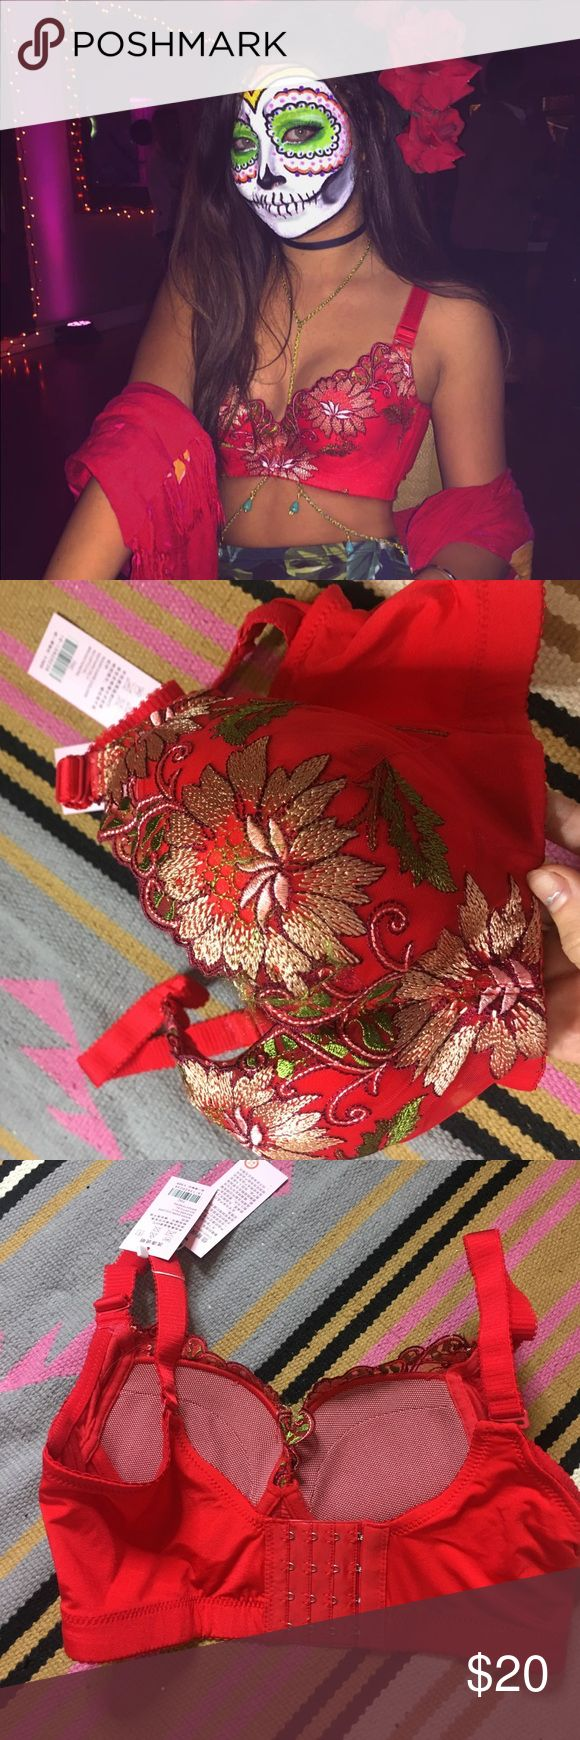 Festival Bralette Top Gorgeous red bra like top- perfect for festivals. I would recommend sizing anywhere from 30-32 A or B cup! Push up pads inside. Perfect condition, never worn. Not free people just listed for exposure. Urban Outfitters Tops